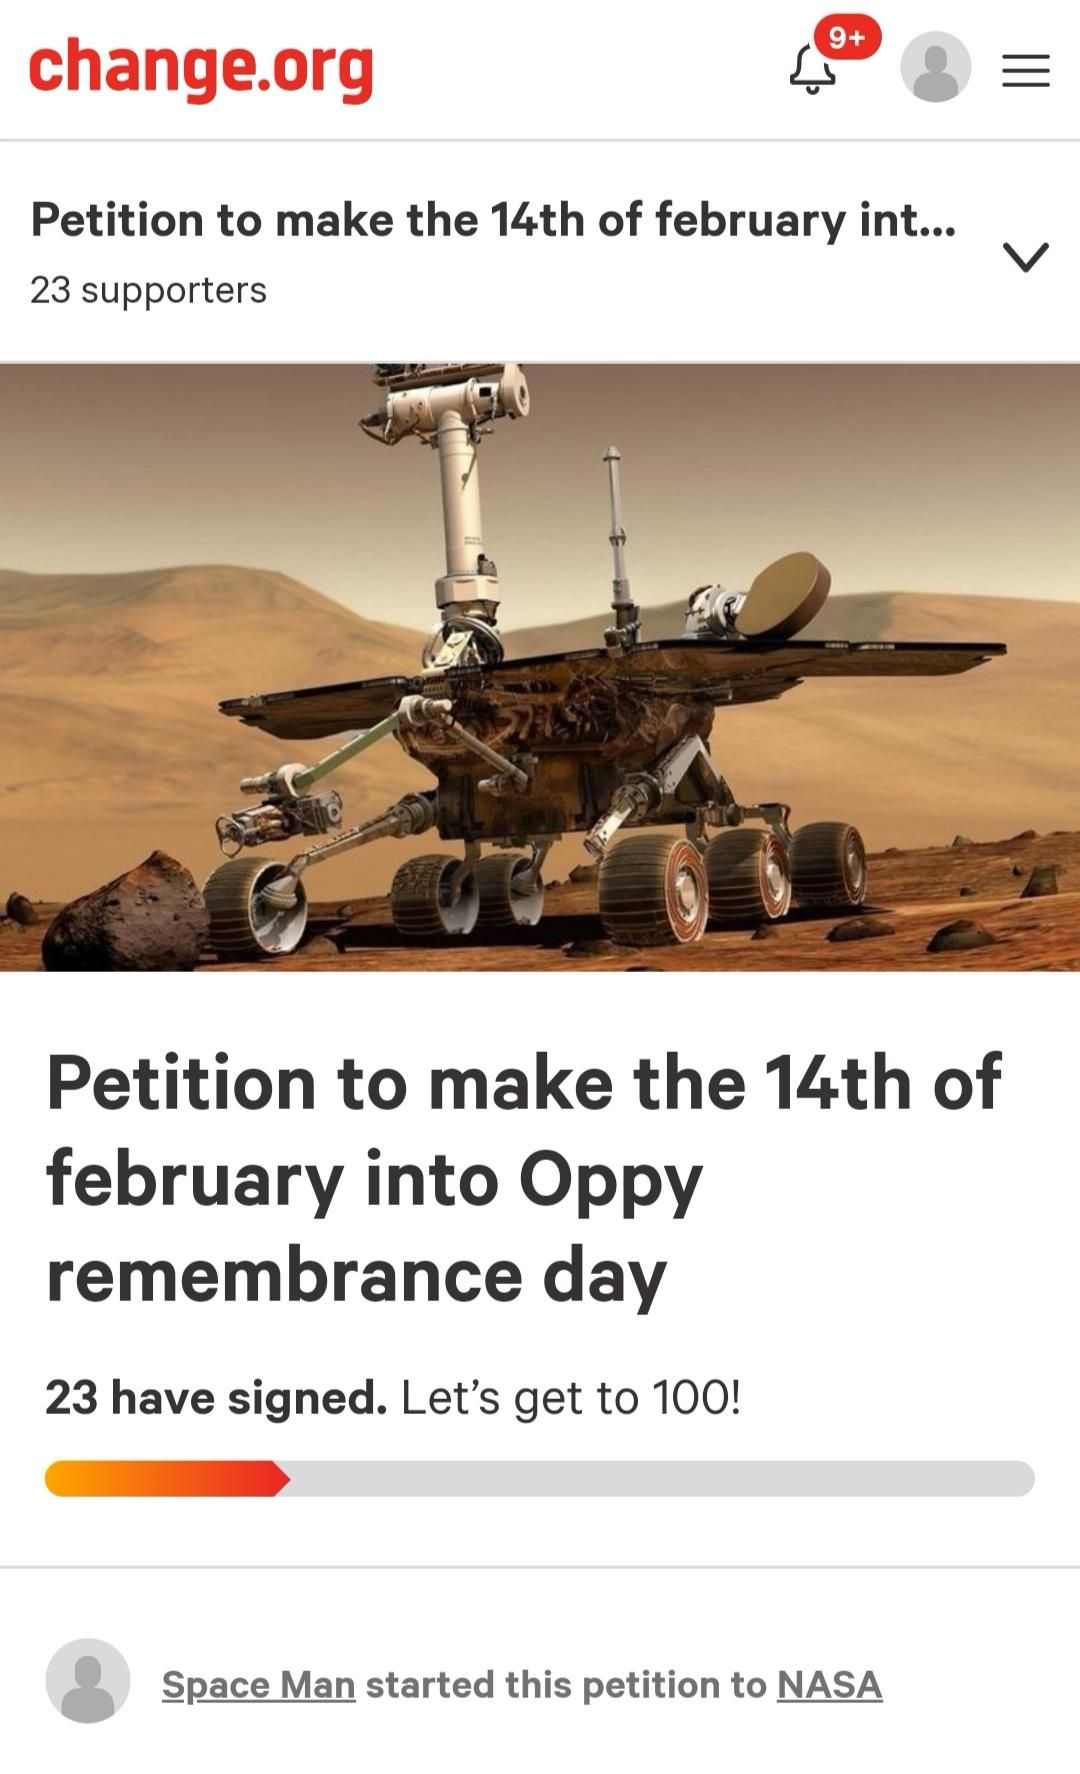 Rip Oppy - Meme in 2020 | R memes, Bad image, Remembrance day